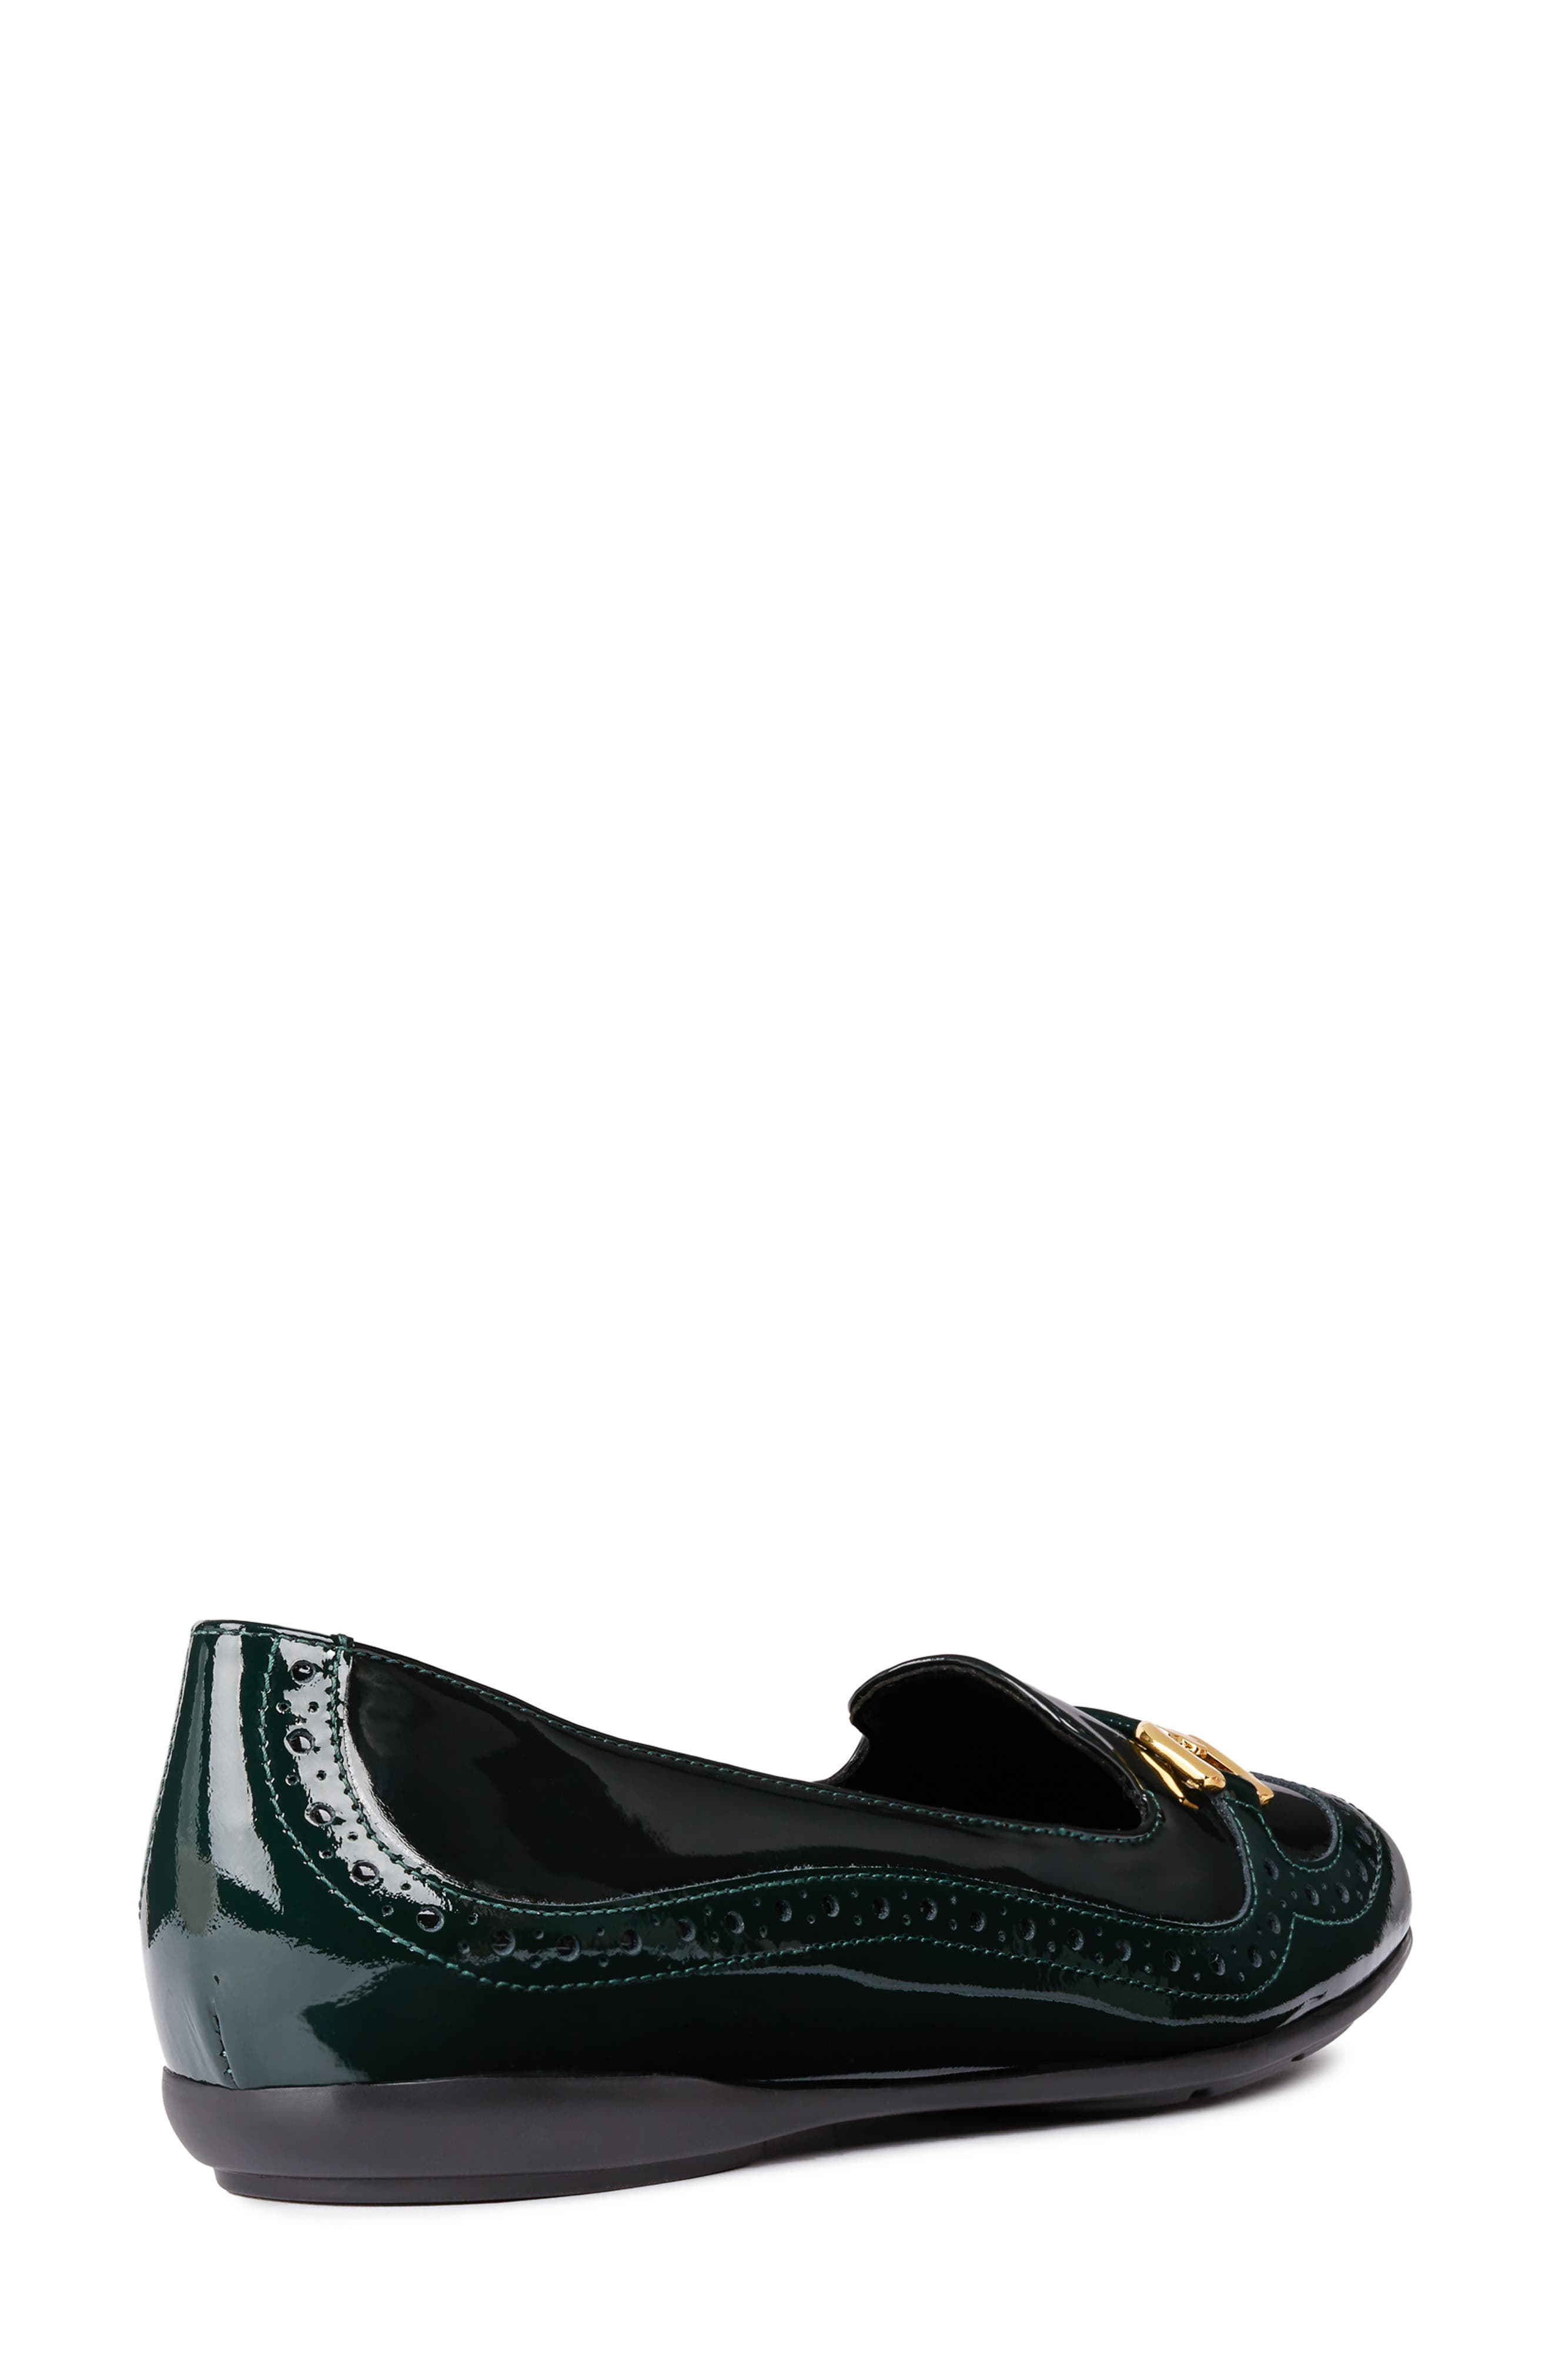 Annytah Loafer,                             Alternate thumbnail 6, color,                             FOREST FAUX PATENT LEATHER